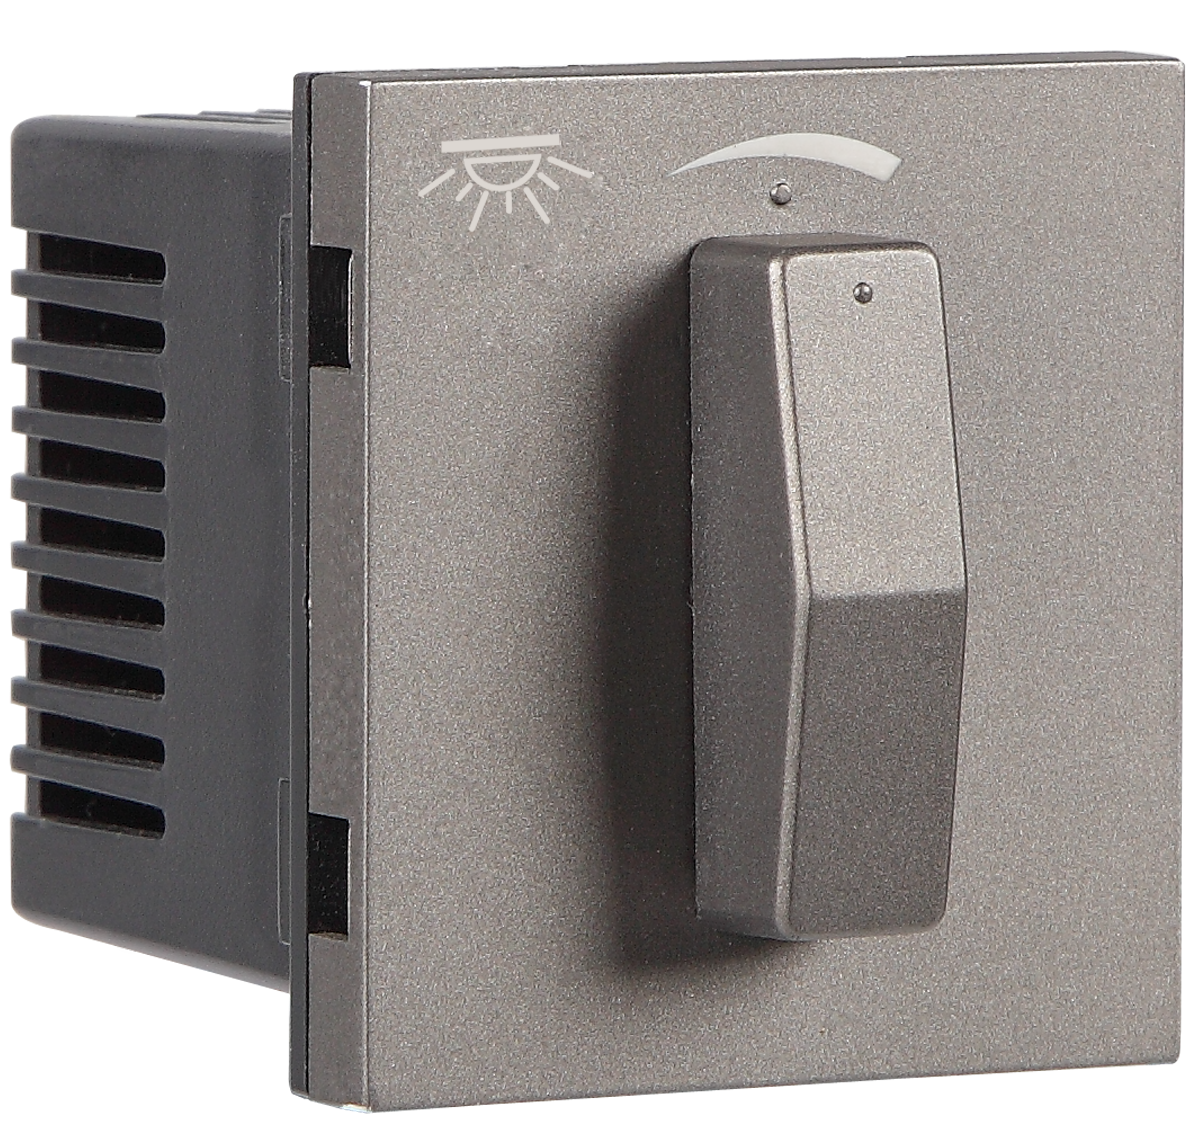 Crabtree - DIMMER 400 W (2 M)